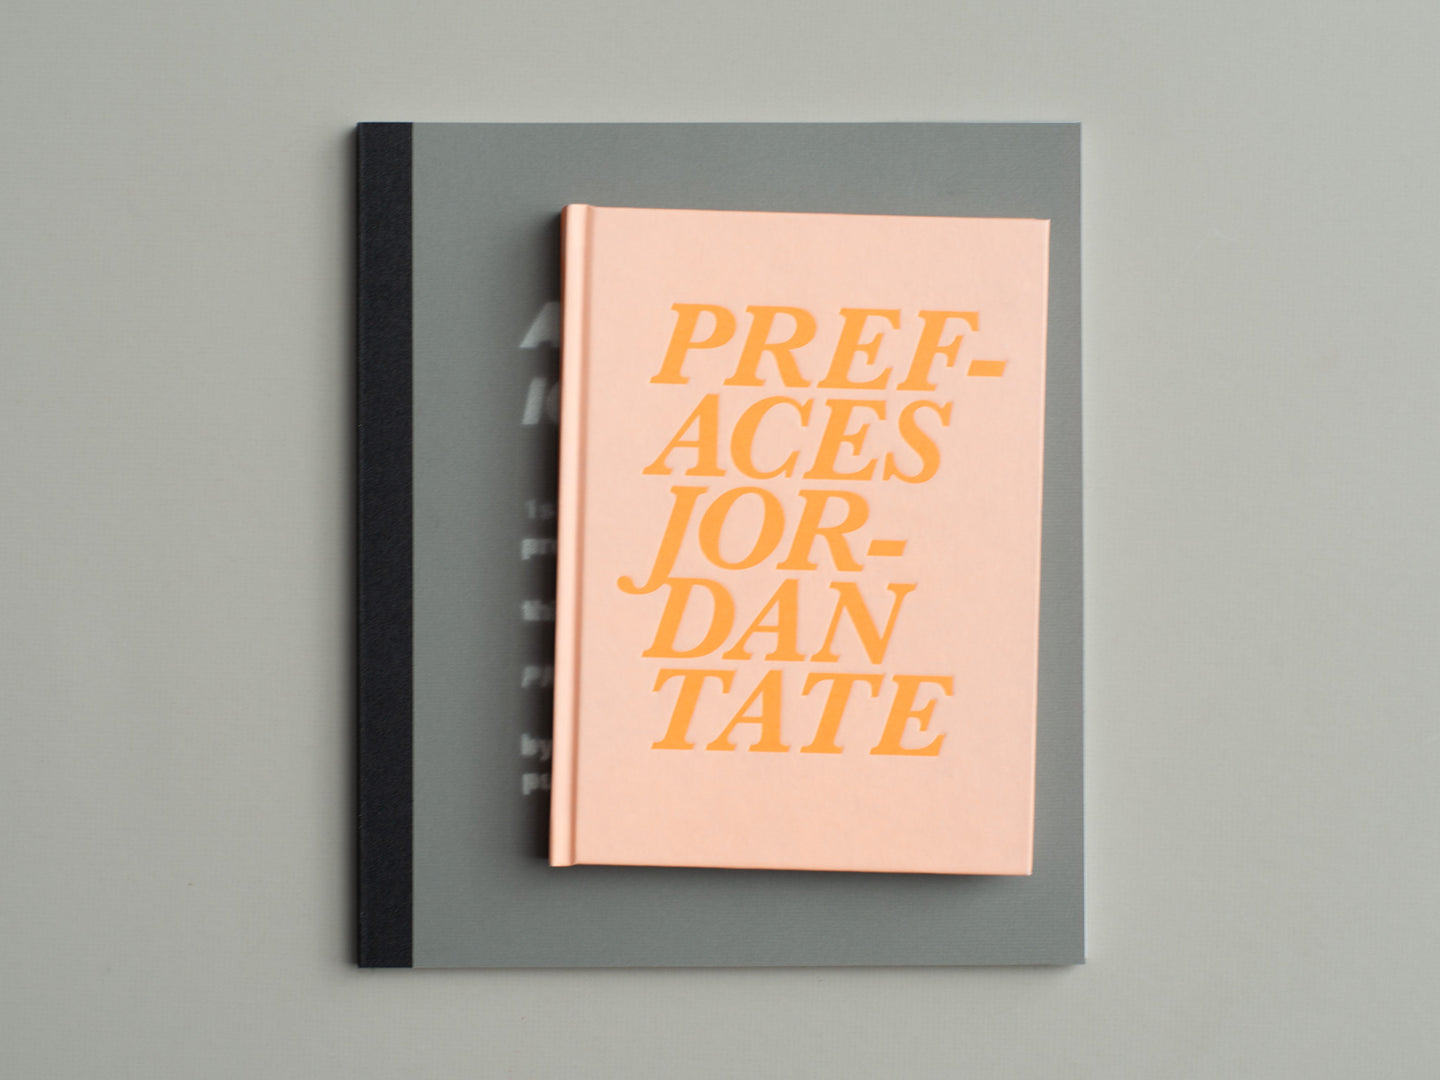 Prefaces by Jordan Tate